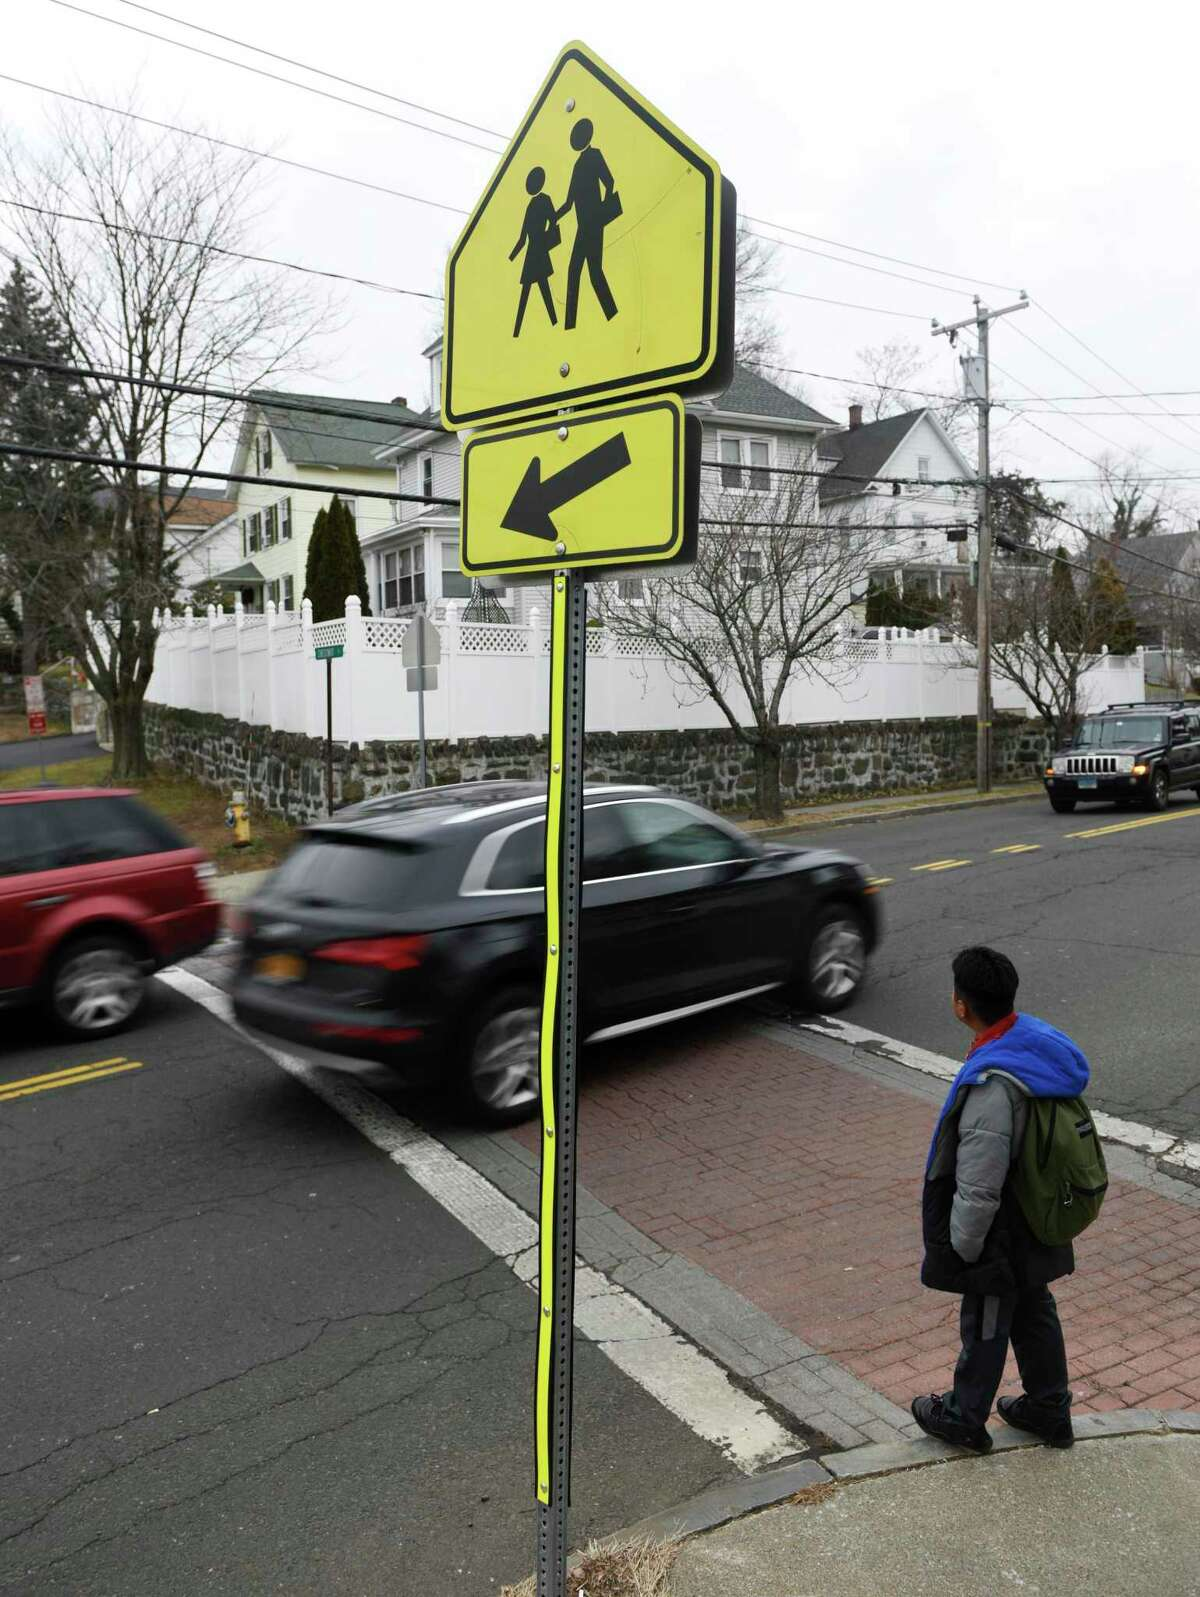 A student waits to cross the street after dismissal from New Lebanon School as cars speed by without stopping at the crosswalk at the intersection of Delavan Avenue and New Lebanon Avenue in the Byram section of Greenwich, Conn. Tuesday, Jan. 14, 2020.